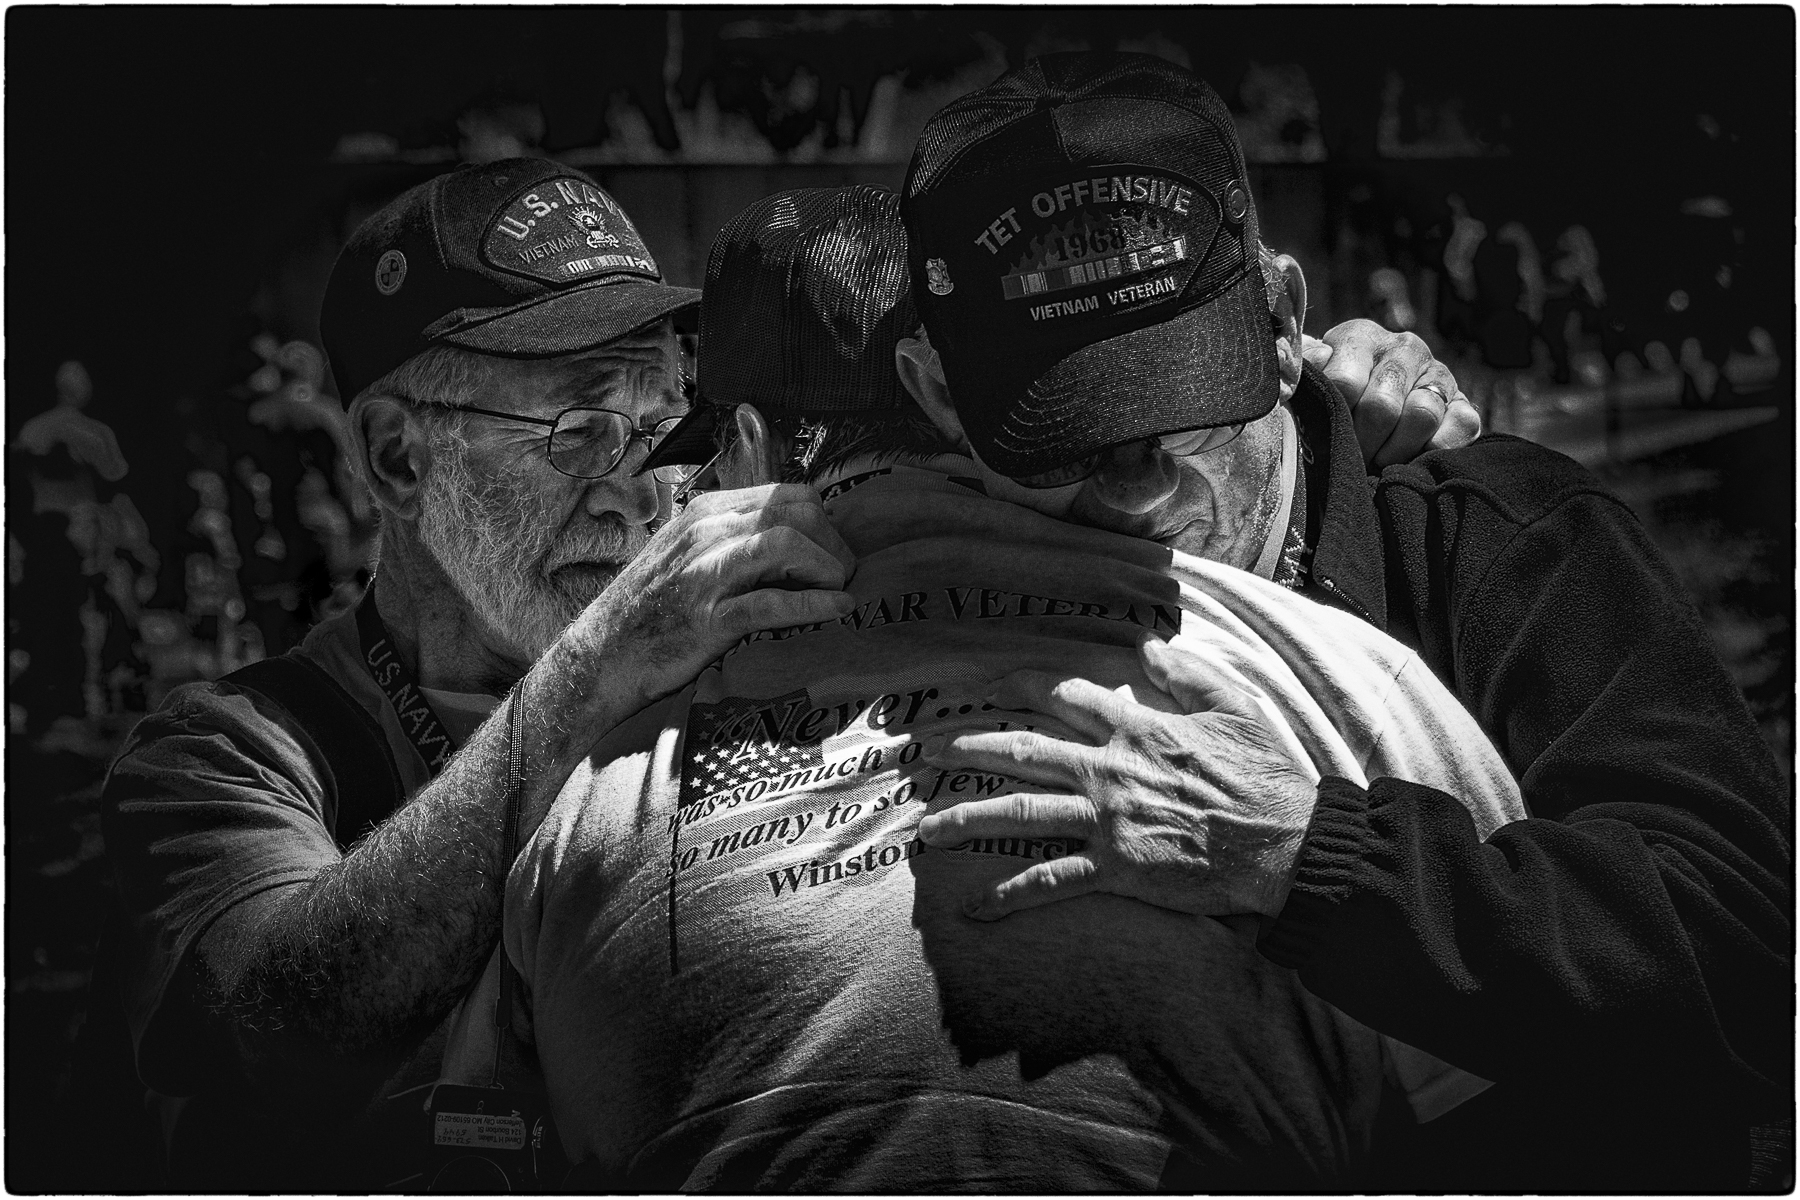 'Three veterans sharing memories of lost friends at the Vietnam Wall, Washington, D.C.' (JM Best in Show) by Ron Elkind - MR